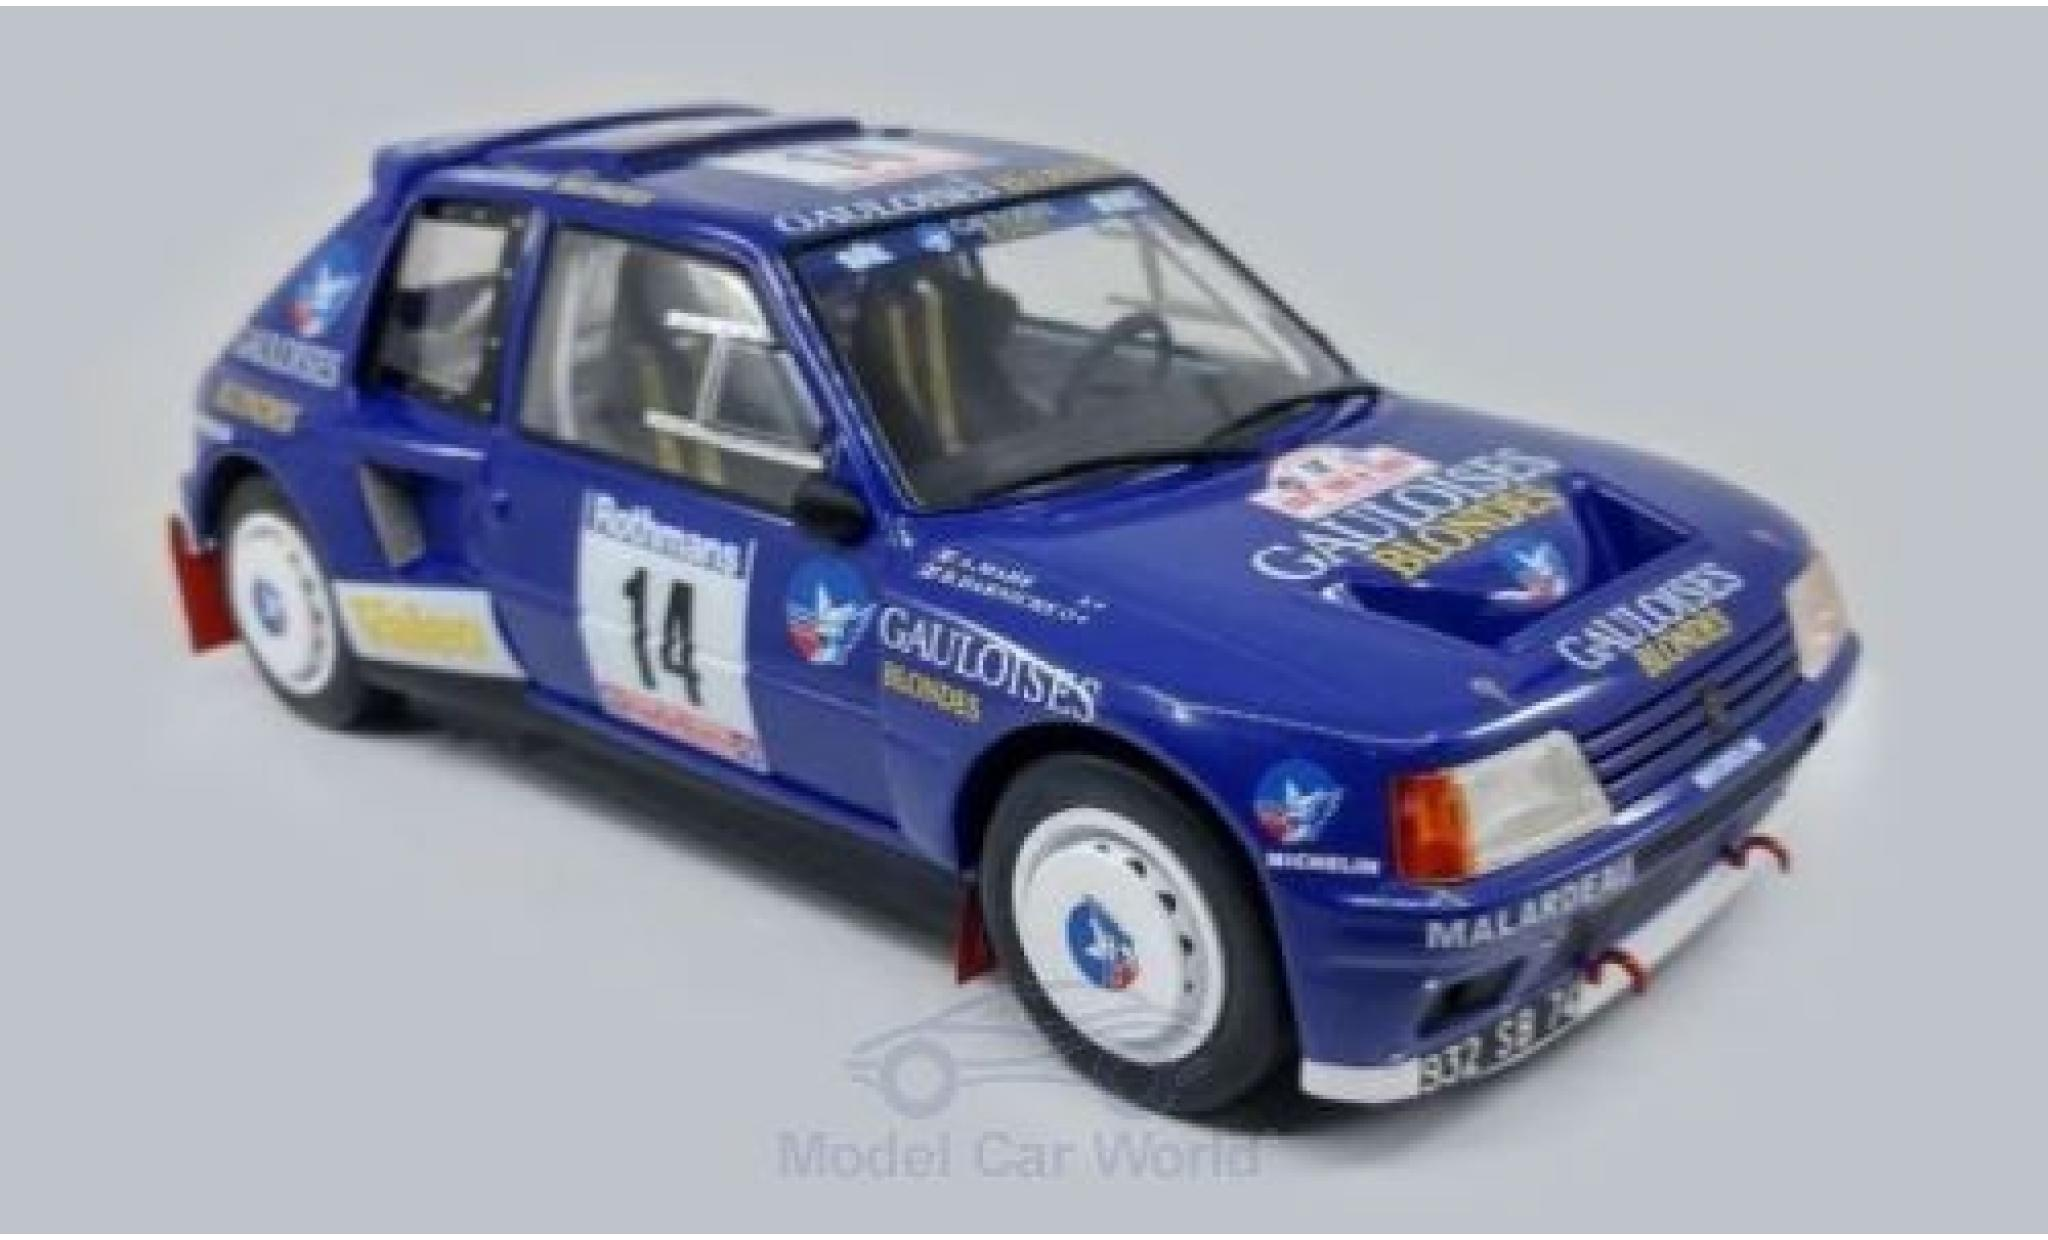 Peugeot 205 1/18 Triple 9 Collection T16 No.14 Gauloises Rallye WM Tour de Corse 1985 B.Darniche/A.Mahe